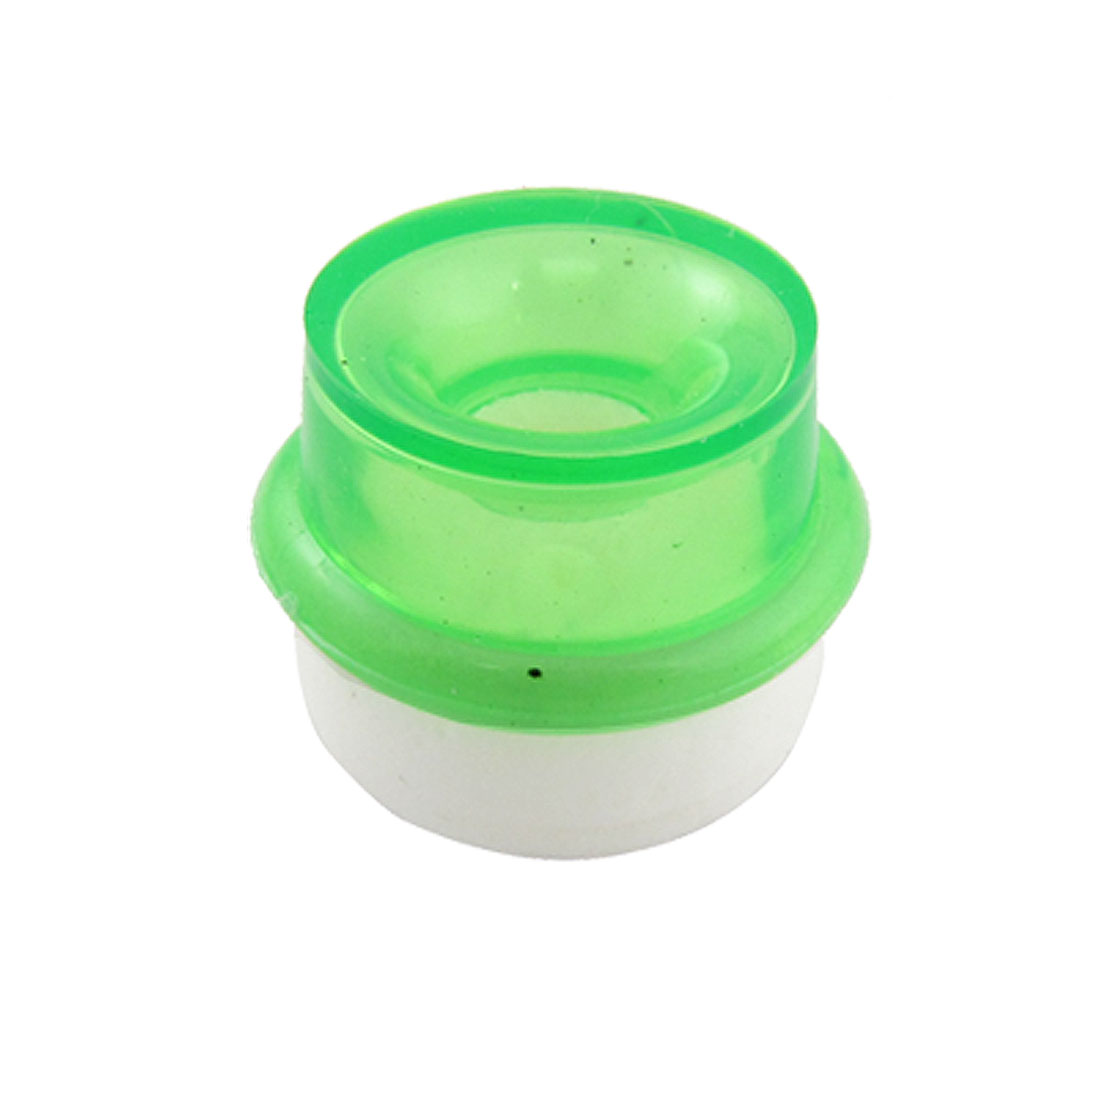 Water Purifying Green Plastic White PVA Faucet Filter